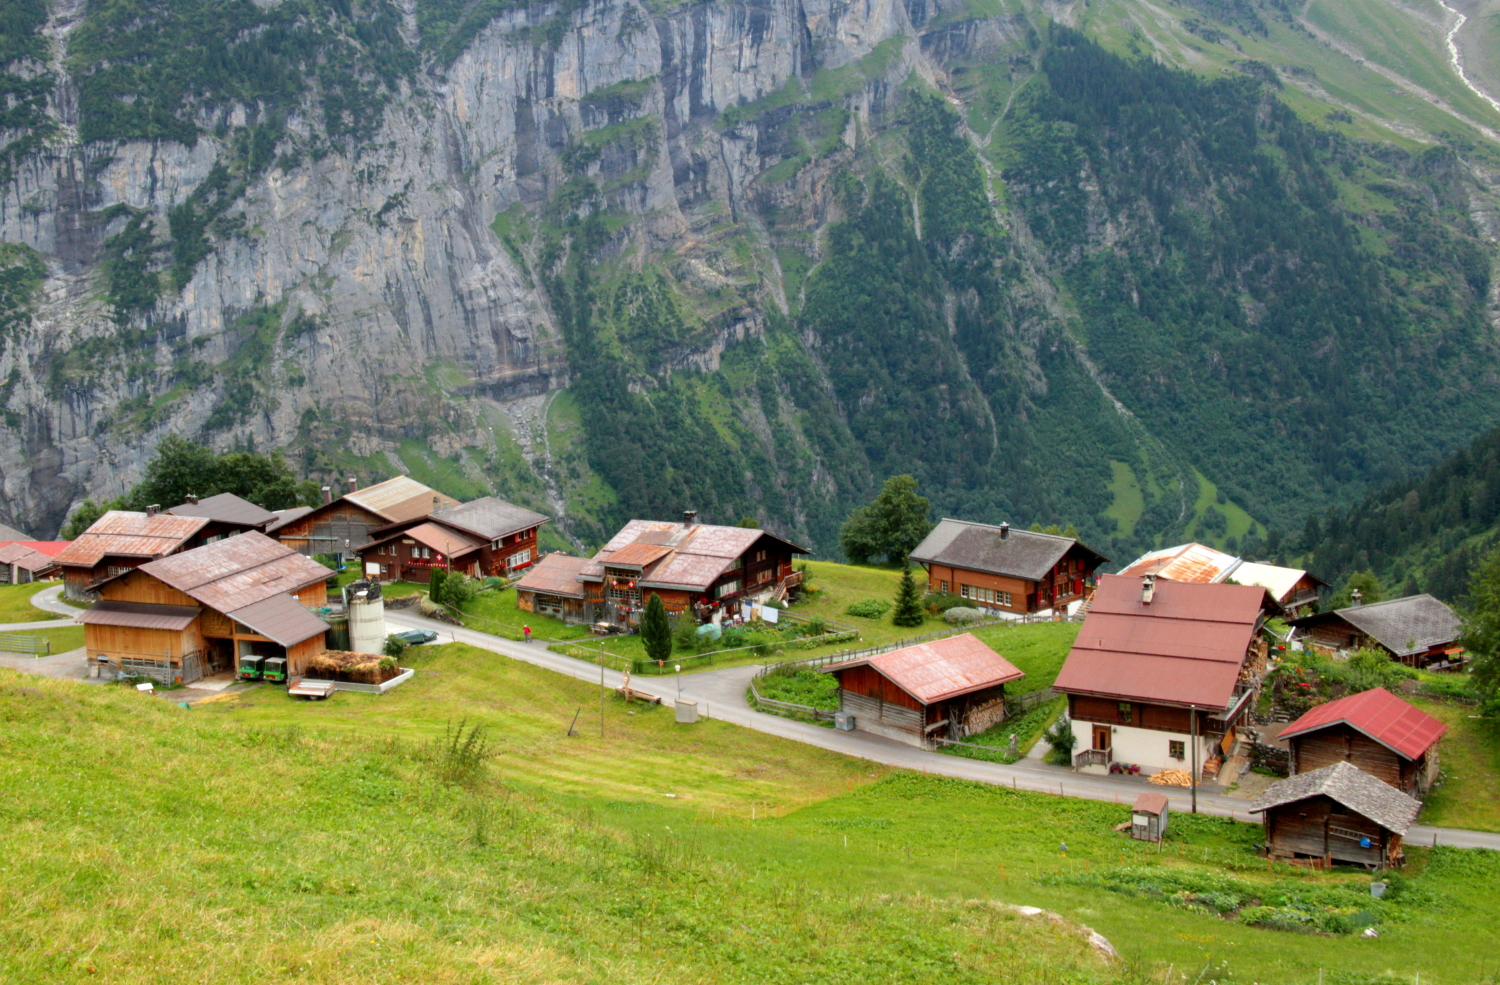 The pretty village of Gimmelwald, high up in the Lauterbrunnen valley, Switzerland